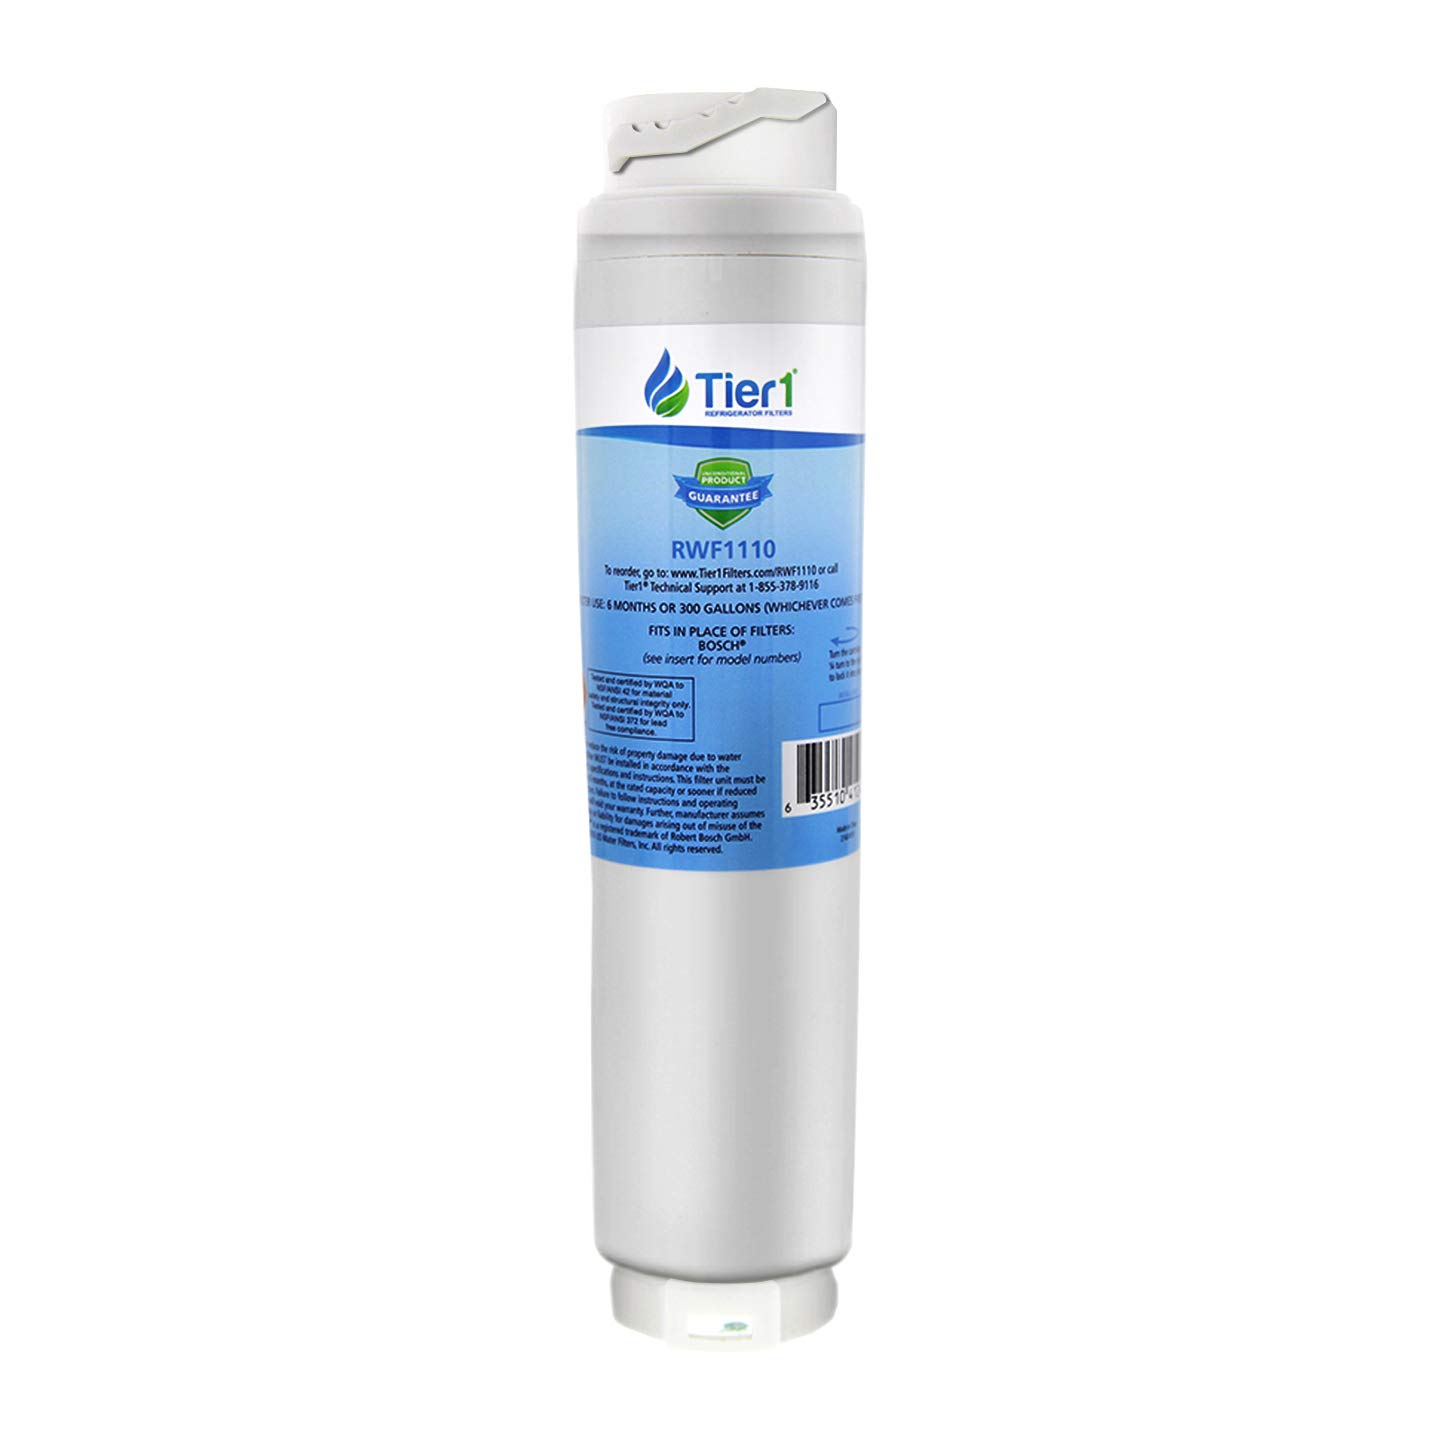 Tier1 Replacement for Bosch 644845 REPLFLTR10 UltraClarity, 644845, 9000194412, 740570, 9000077095, 9000193914 Refrigerator Water Filter